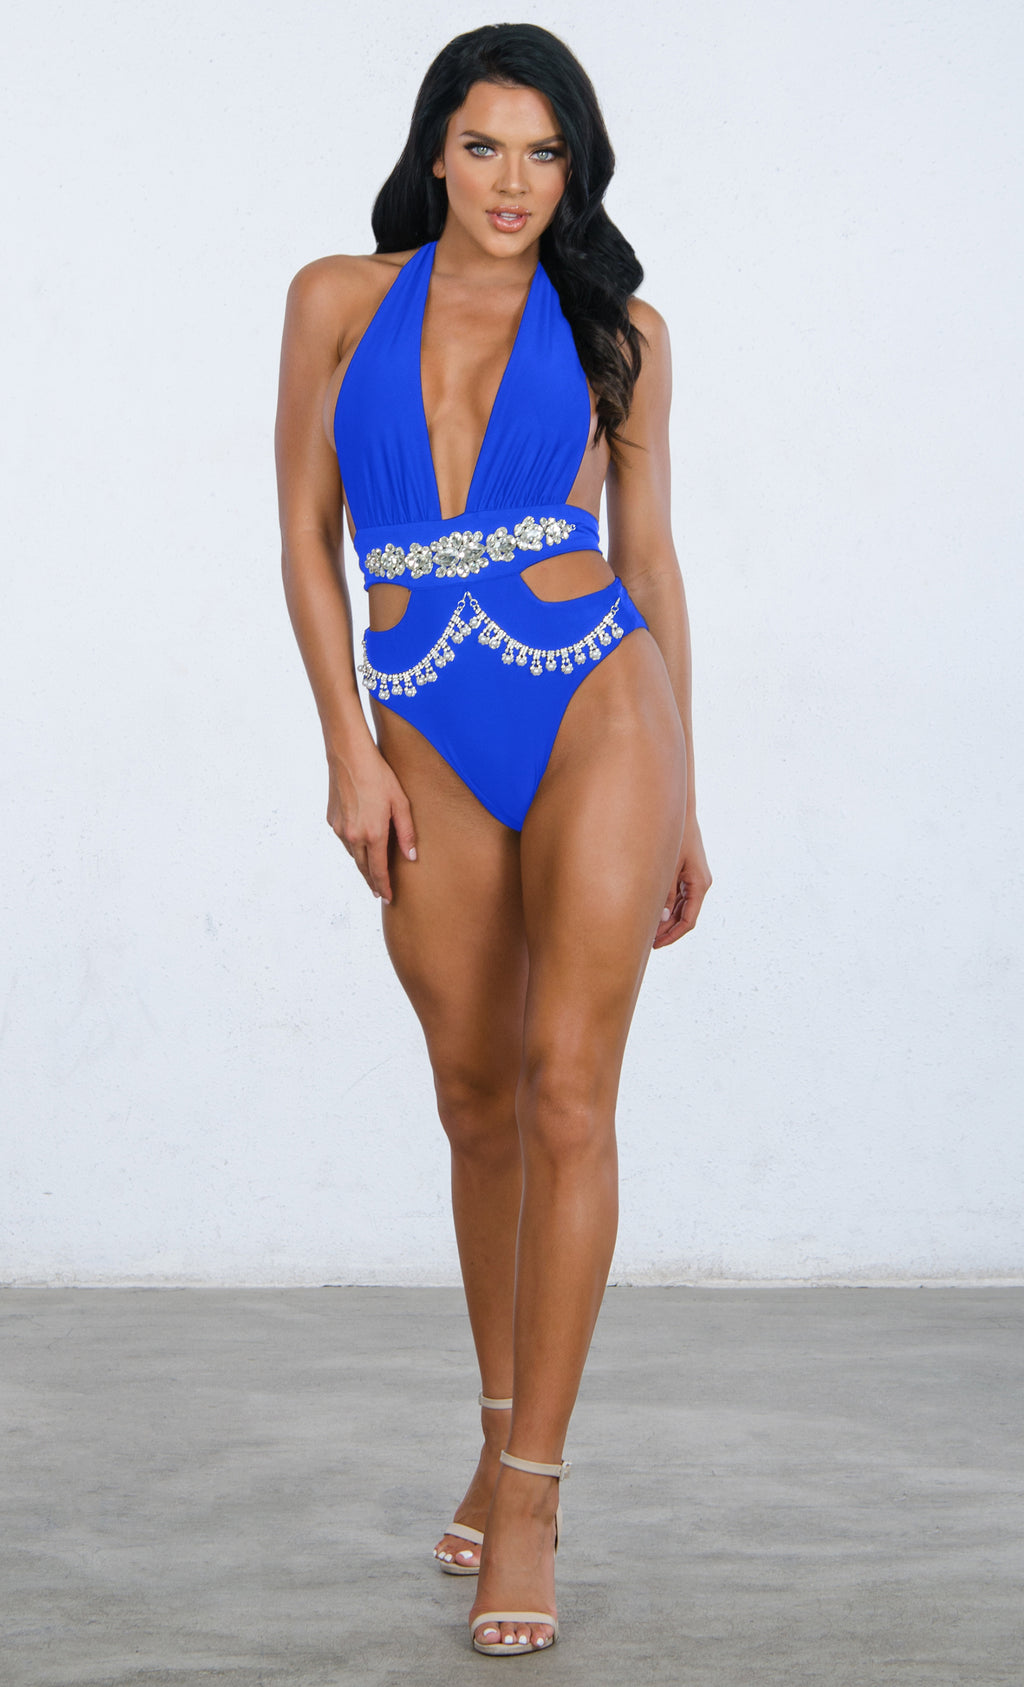 Indie XO Shake It Off Royal Blue Rhinestone Beaded Bling Crystal Chain Cut Out Gemstone Plunge V Neck Monokini One Piece Swimsuit - 3 Colors Available